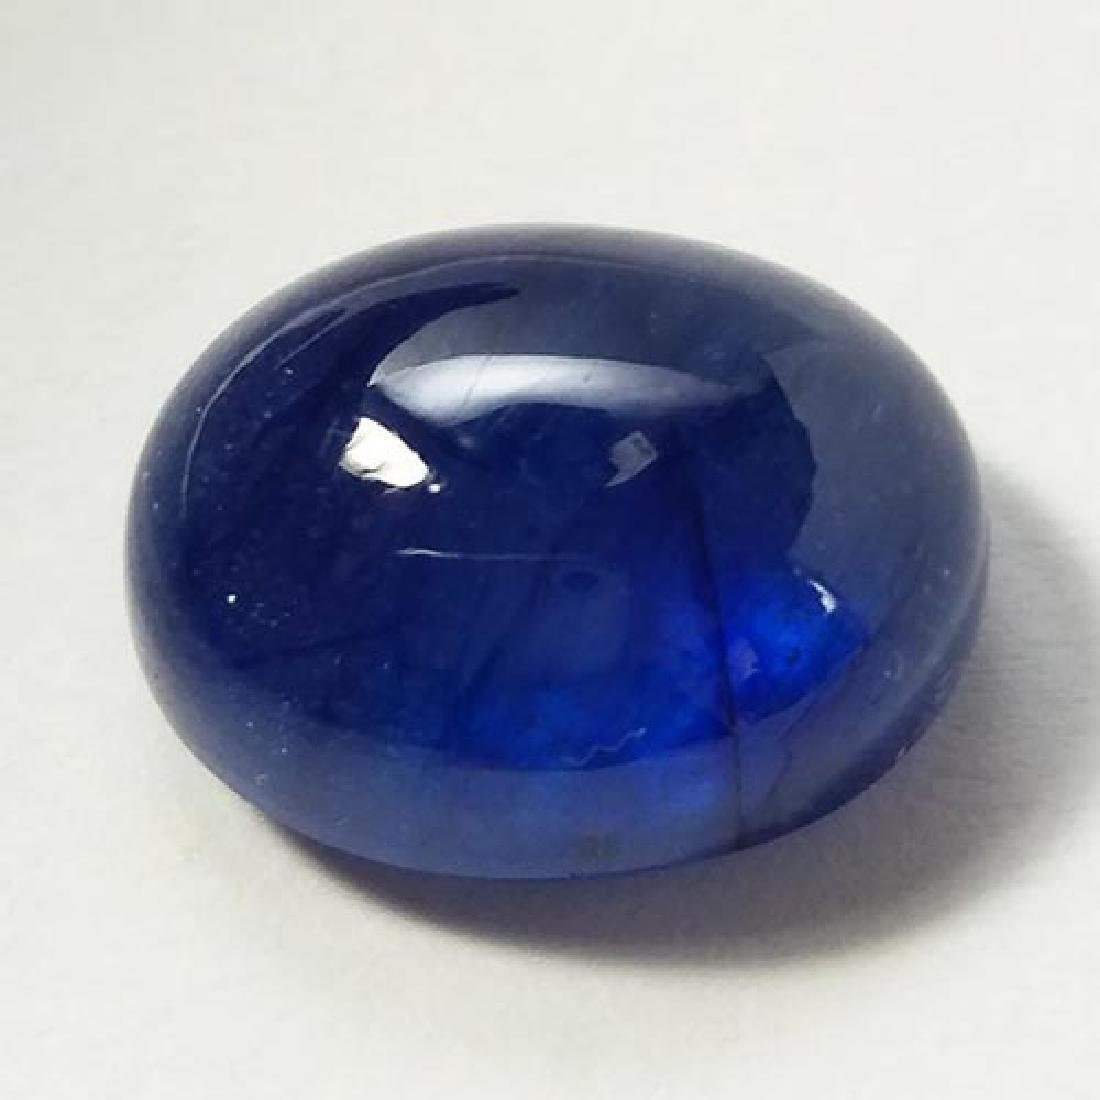 10.20Cts STUNNING LUSTER OVAL BLUE SAPPHIRE GLASS FILL